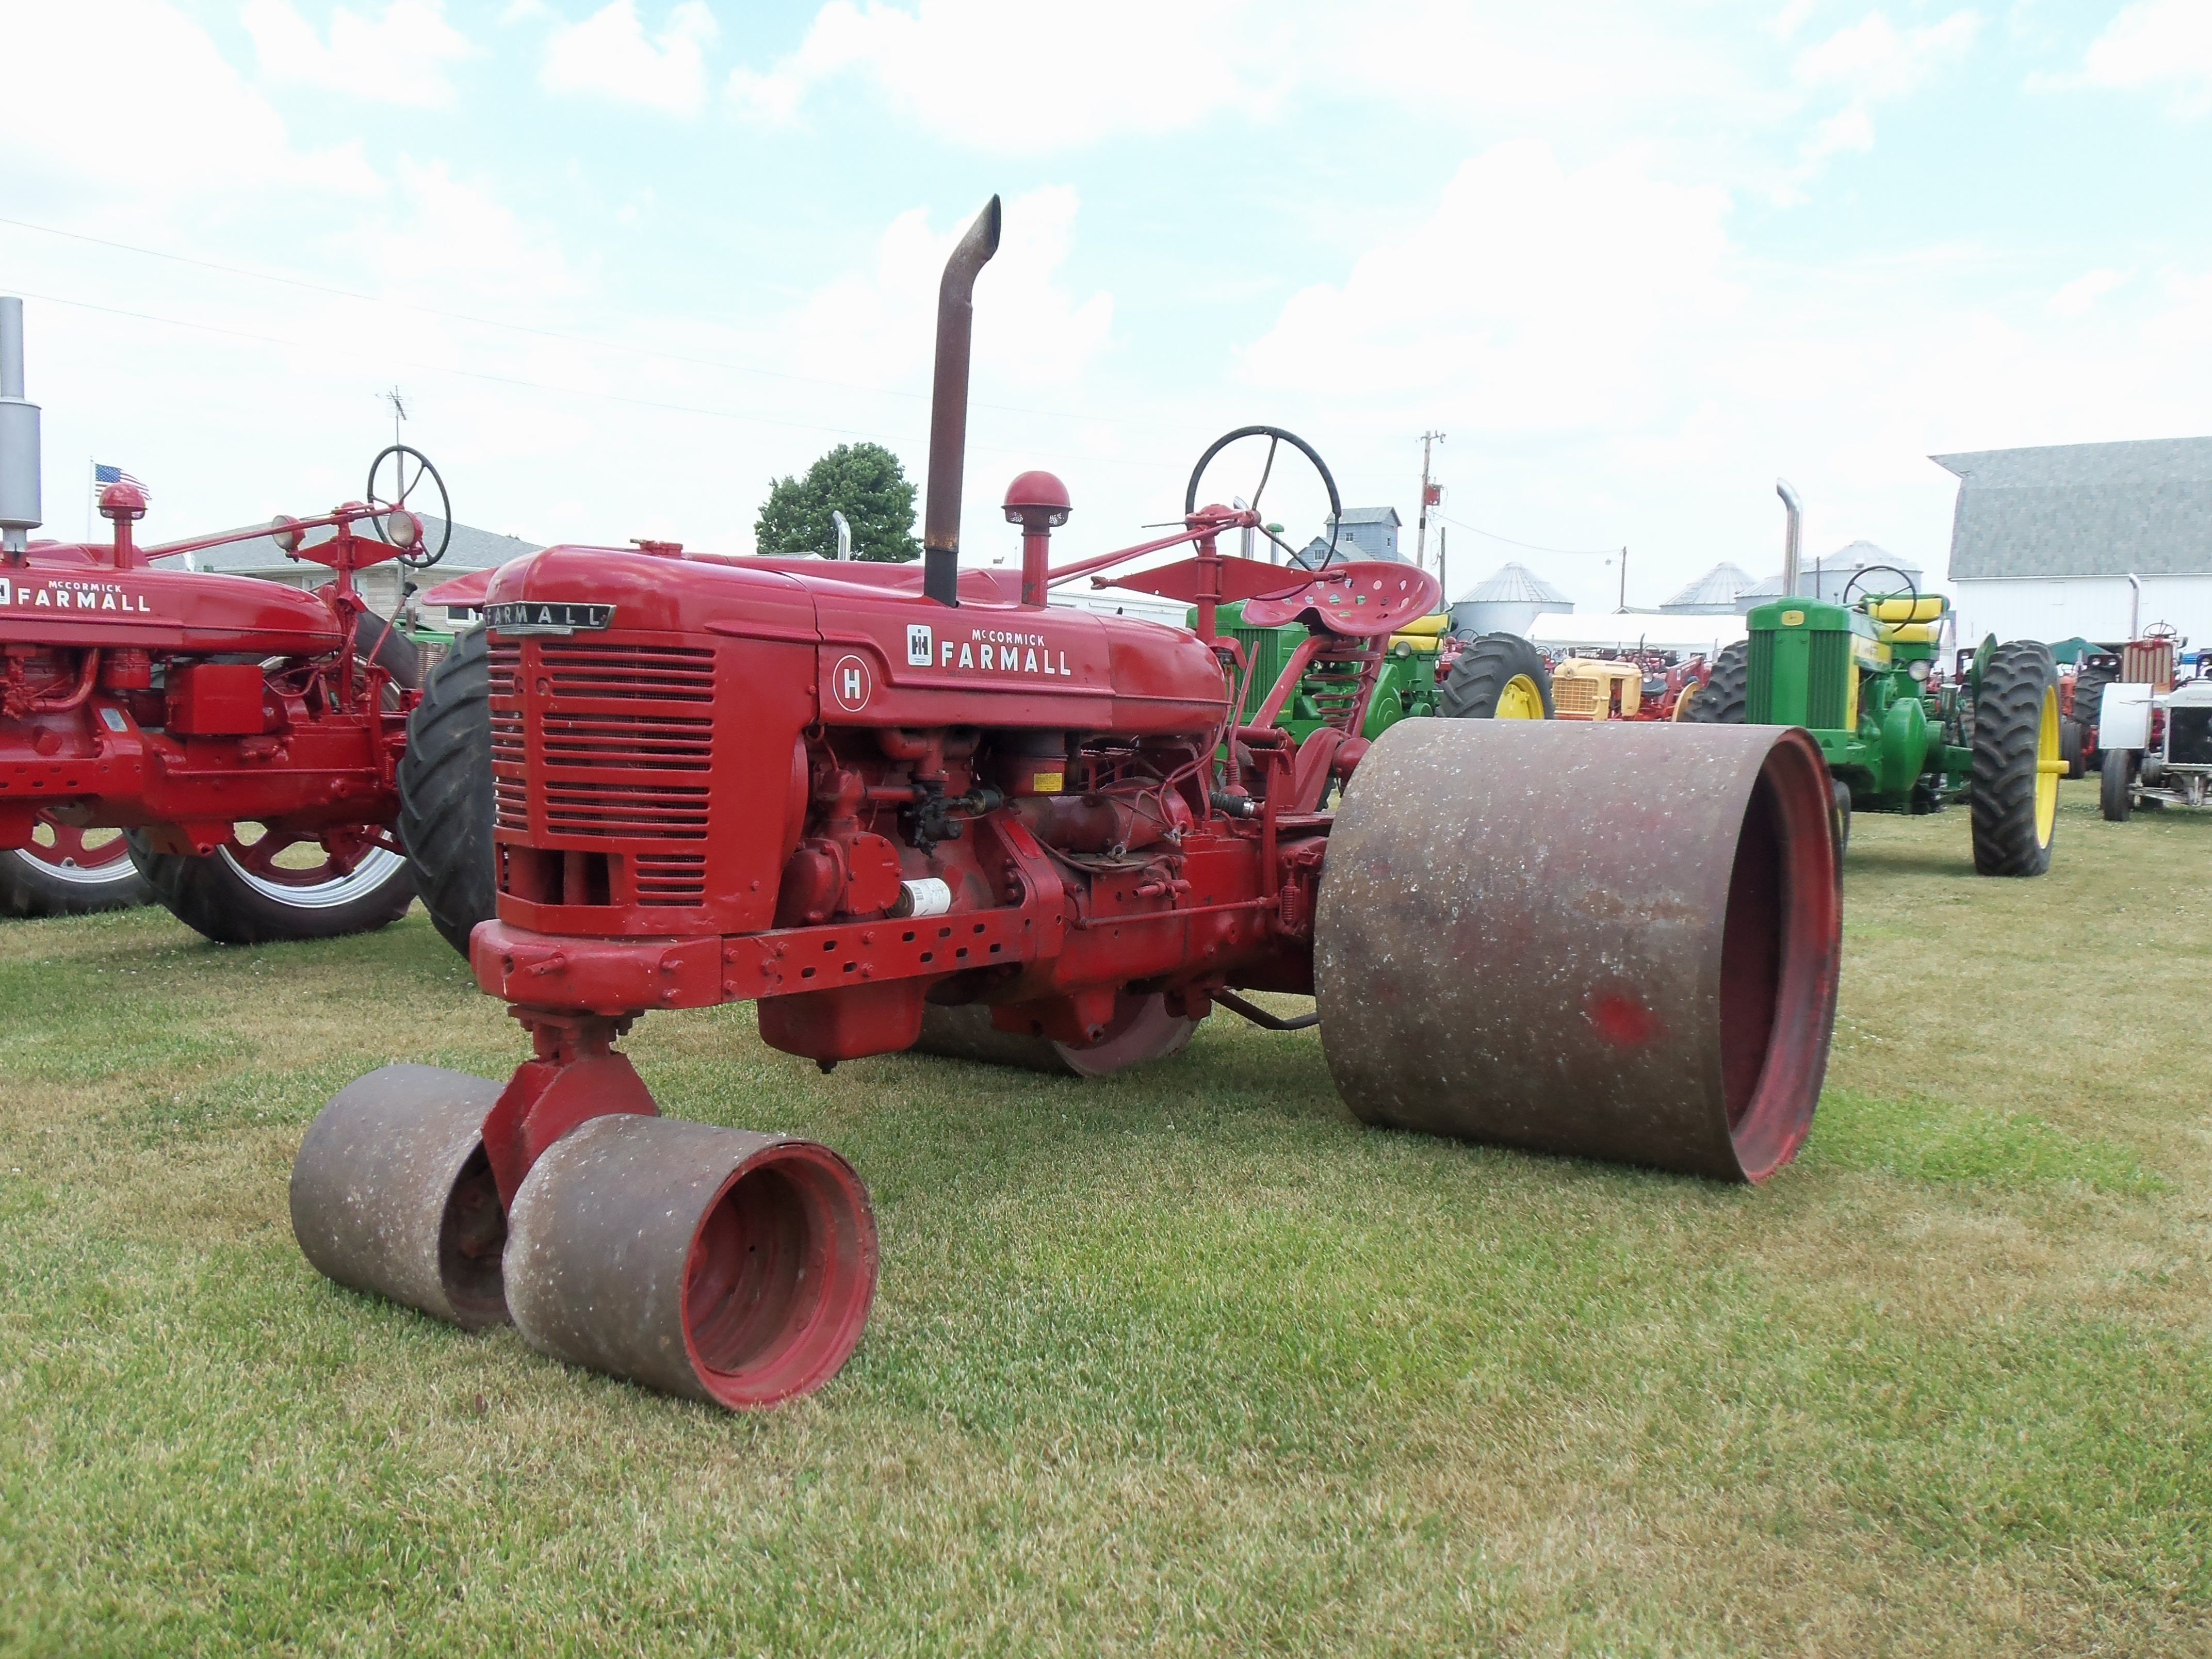 Farmall h or m talk about rollers